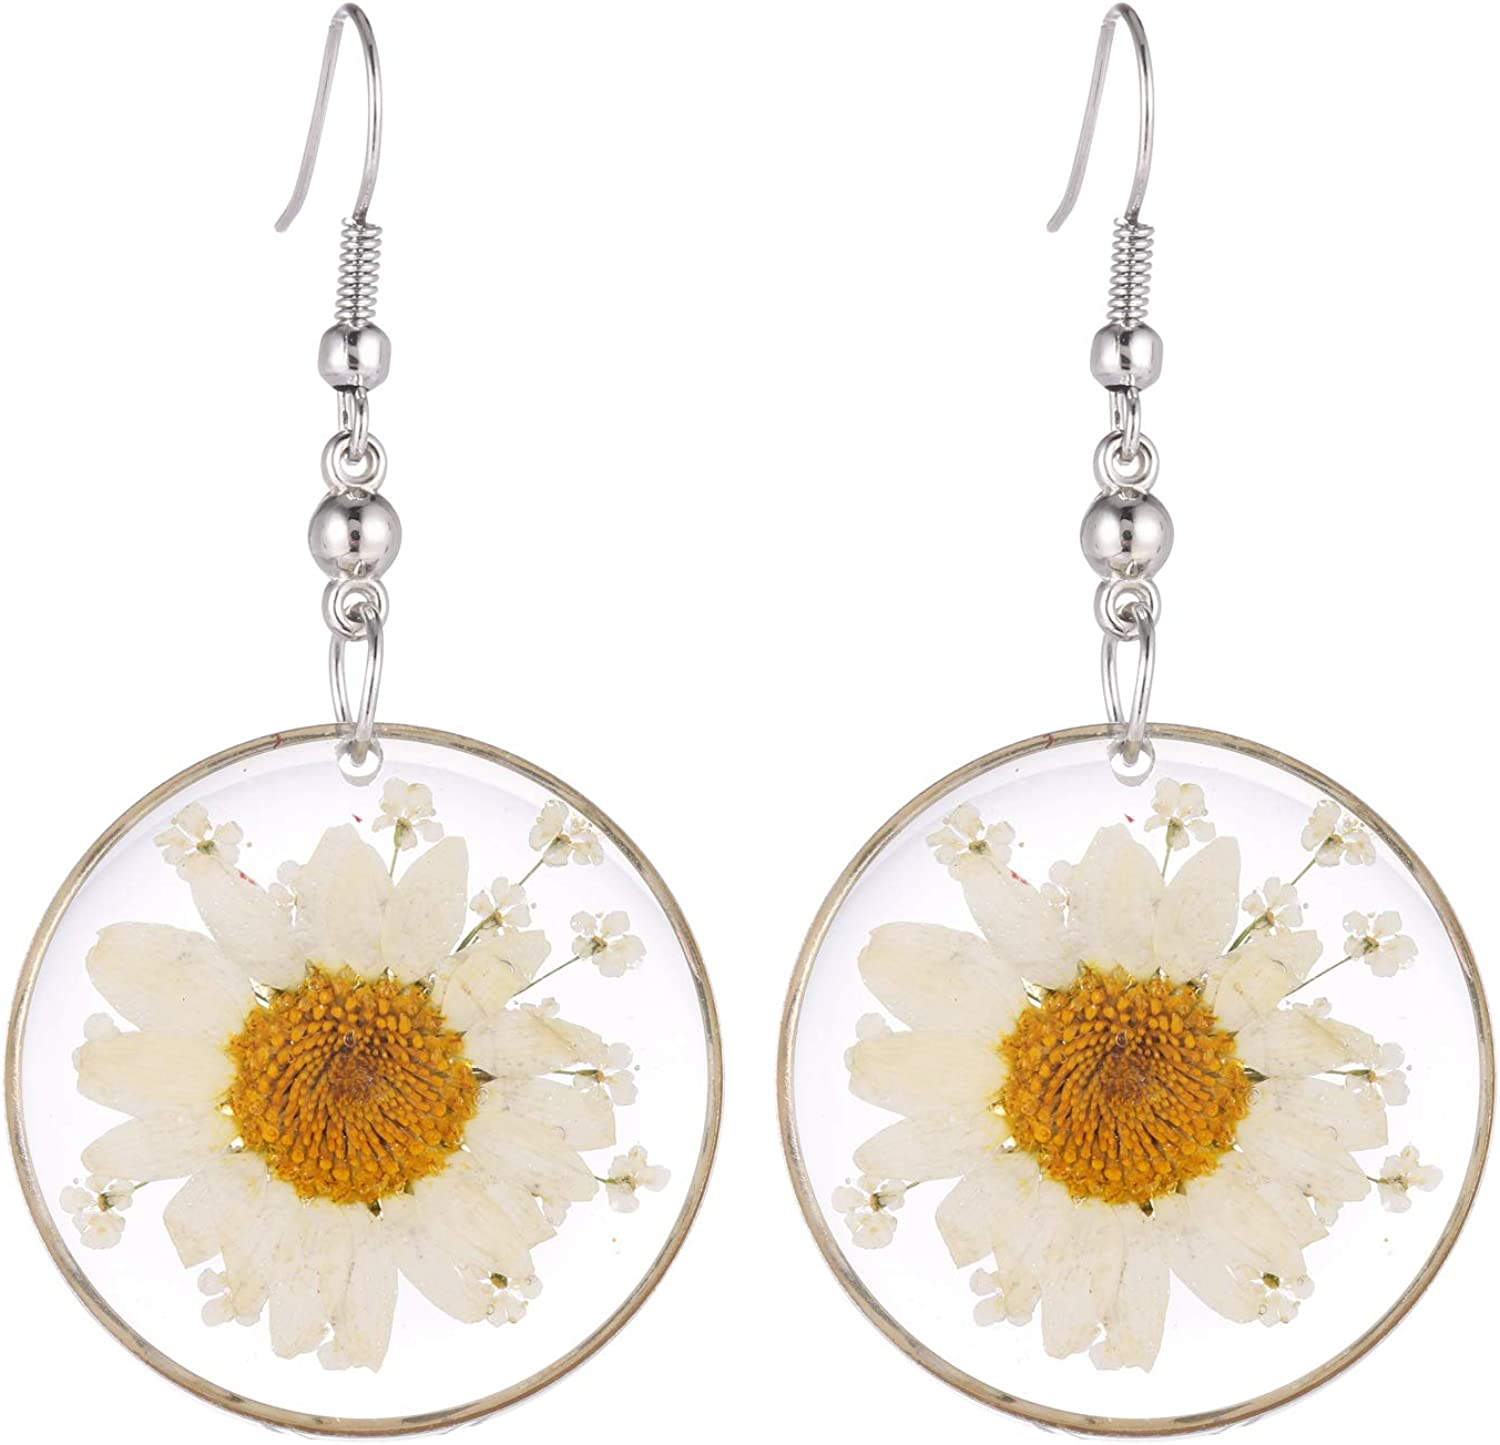 """FM FM42 Multi-Colored Pressed Daisy & Queen Anne's Lace Flowers 1.14"""" Round Circle Drop Dangle Hook Earrings, 7 Colors"""